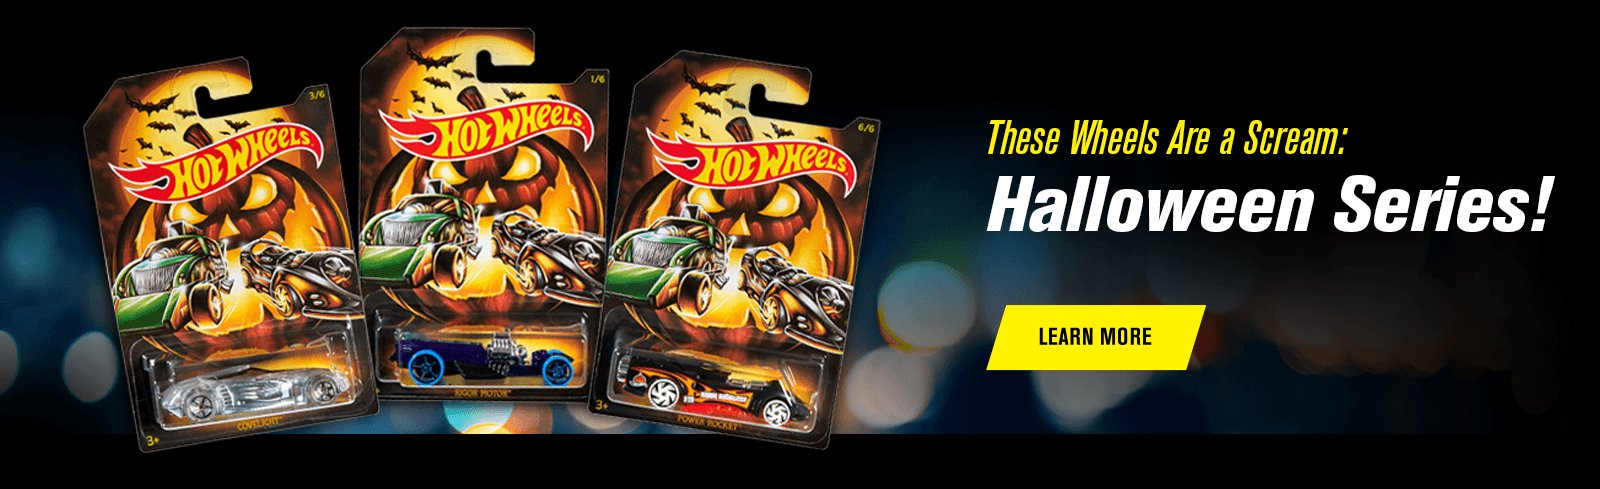 These Wheels Are a Scream: Halloween Series!